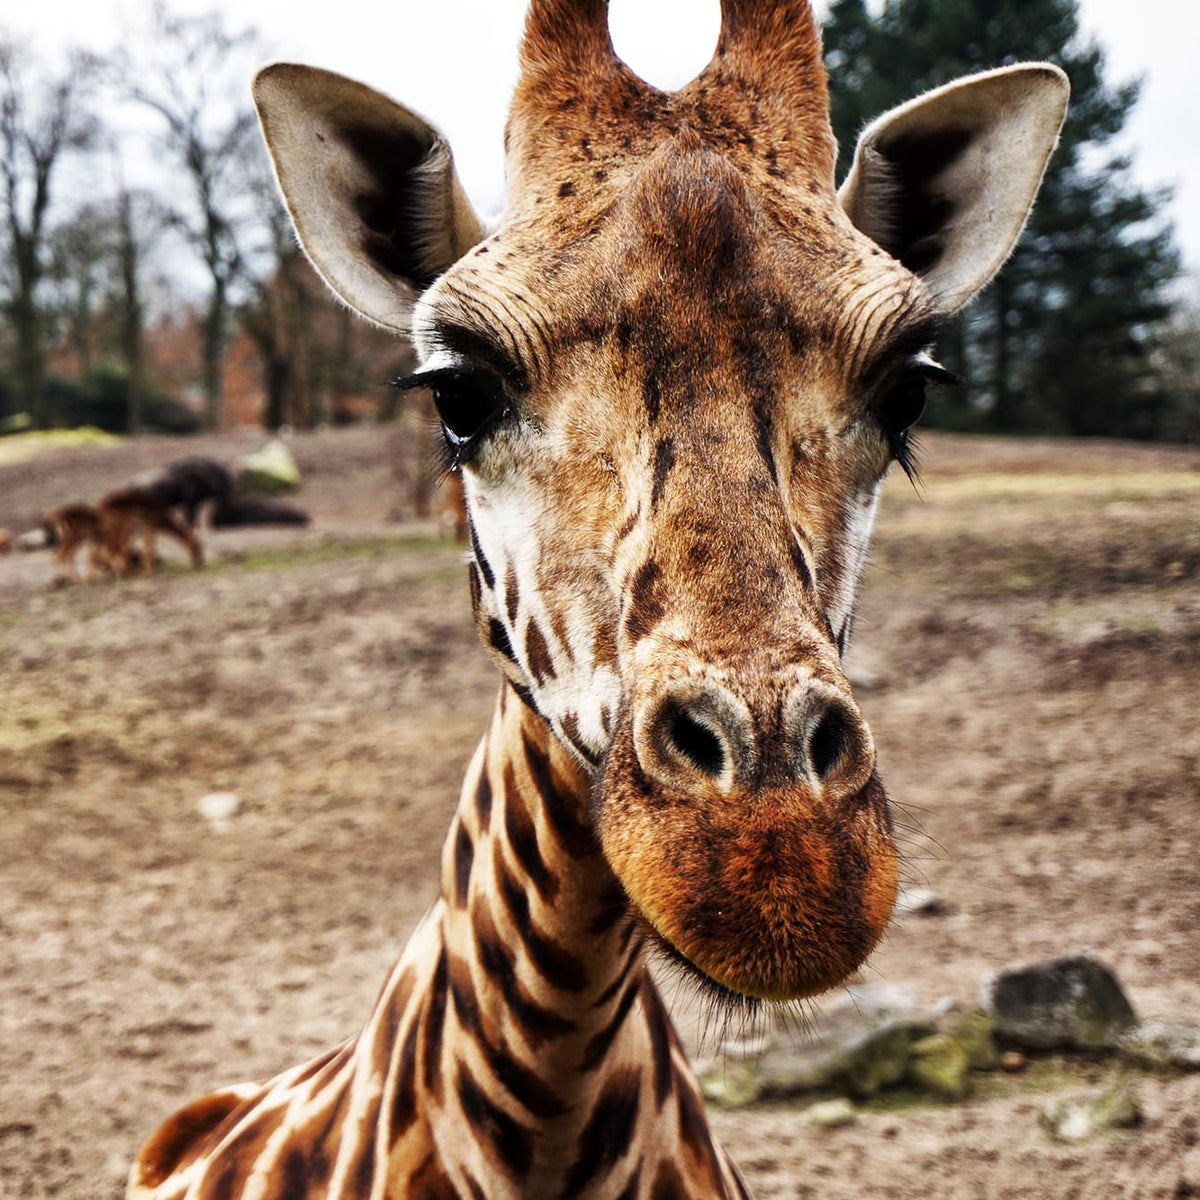 giraffe looking at the camera - Connected Clothing Company donates 10% to Giraffe Conservation Foundation conservation efforts